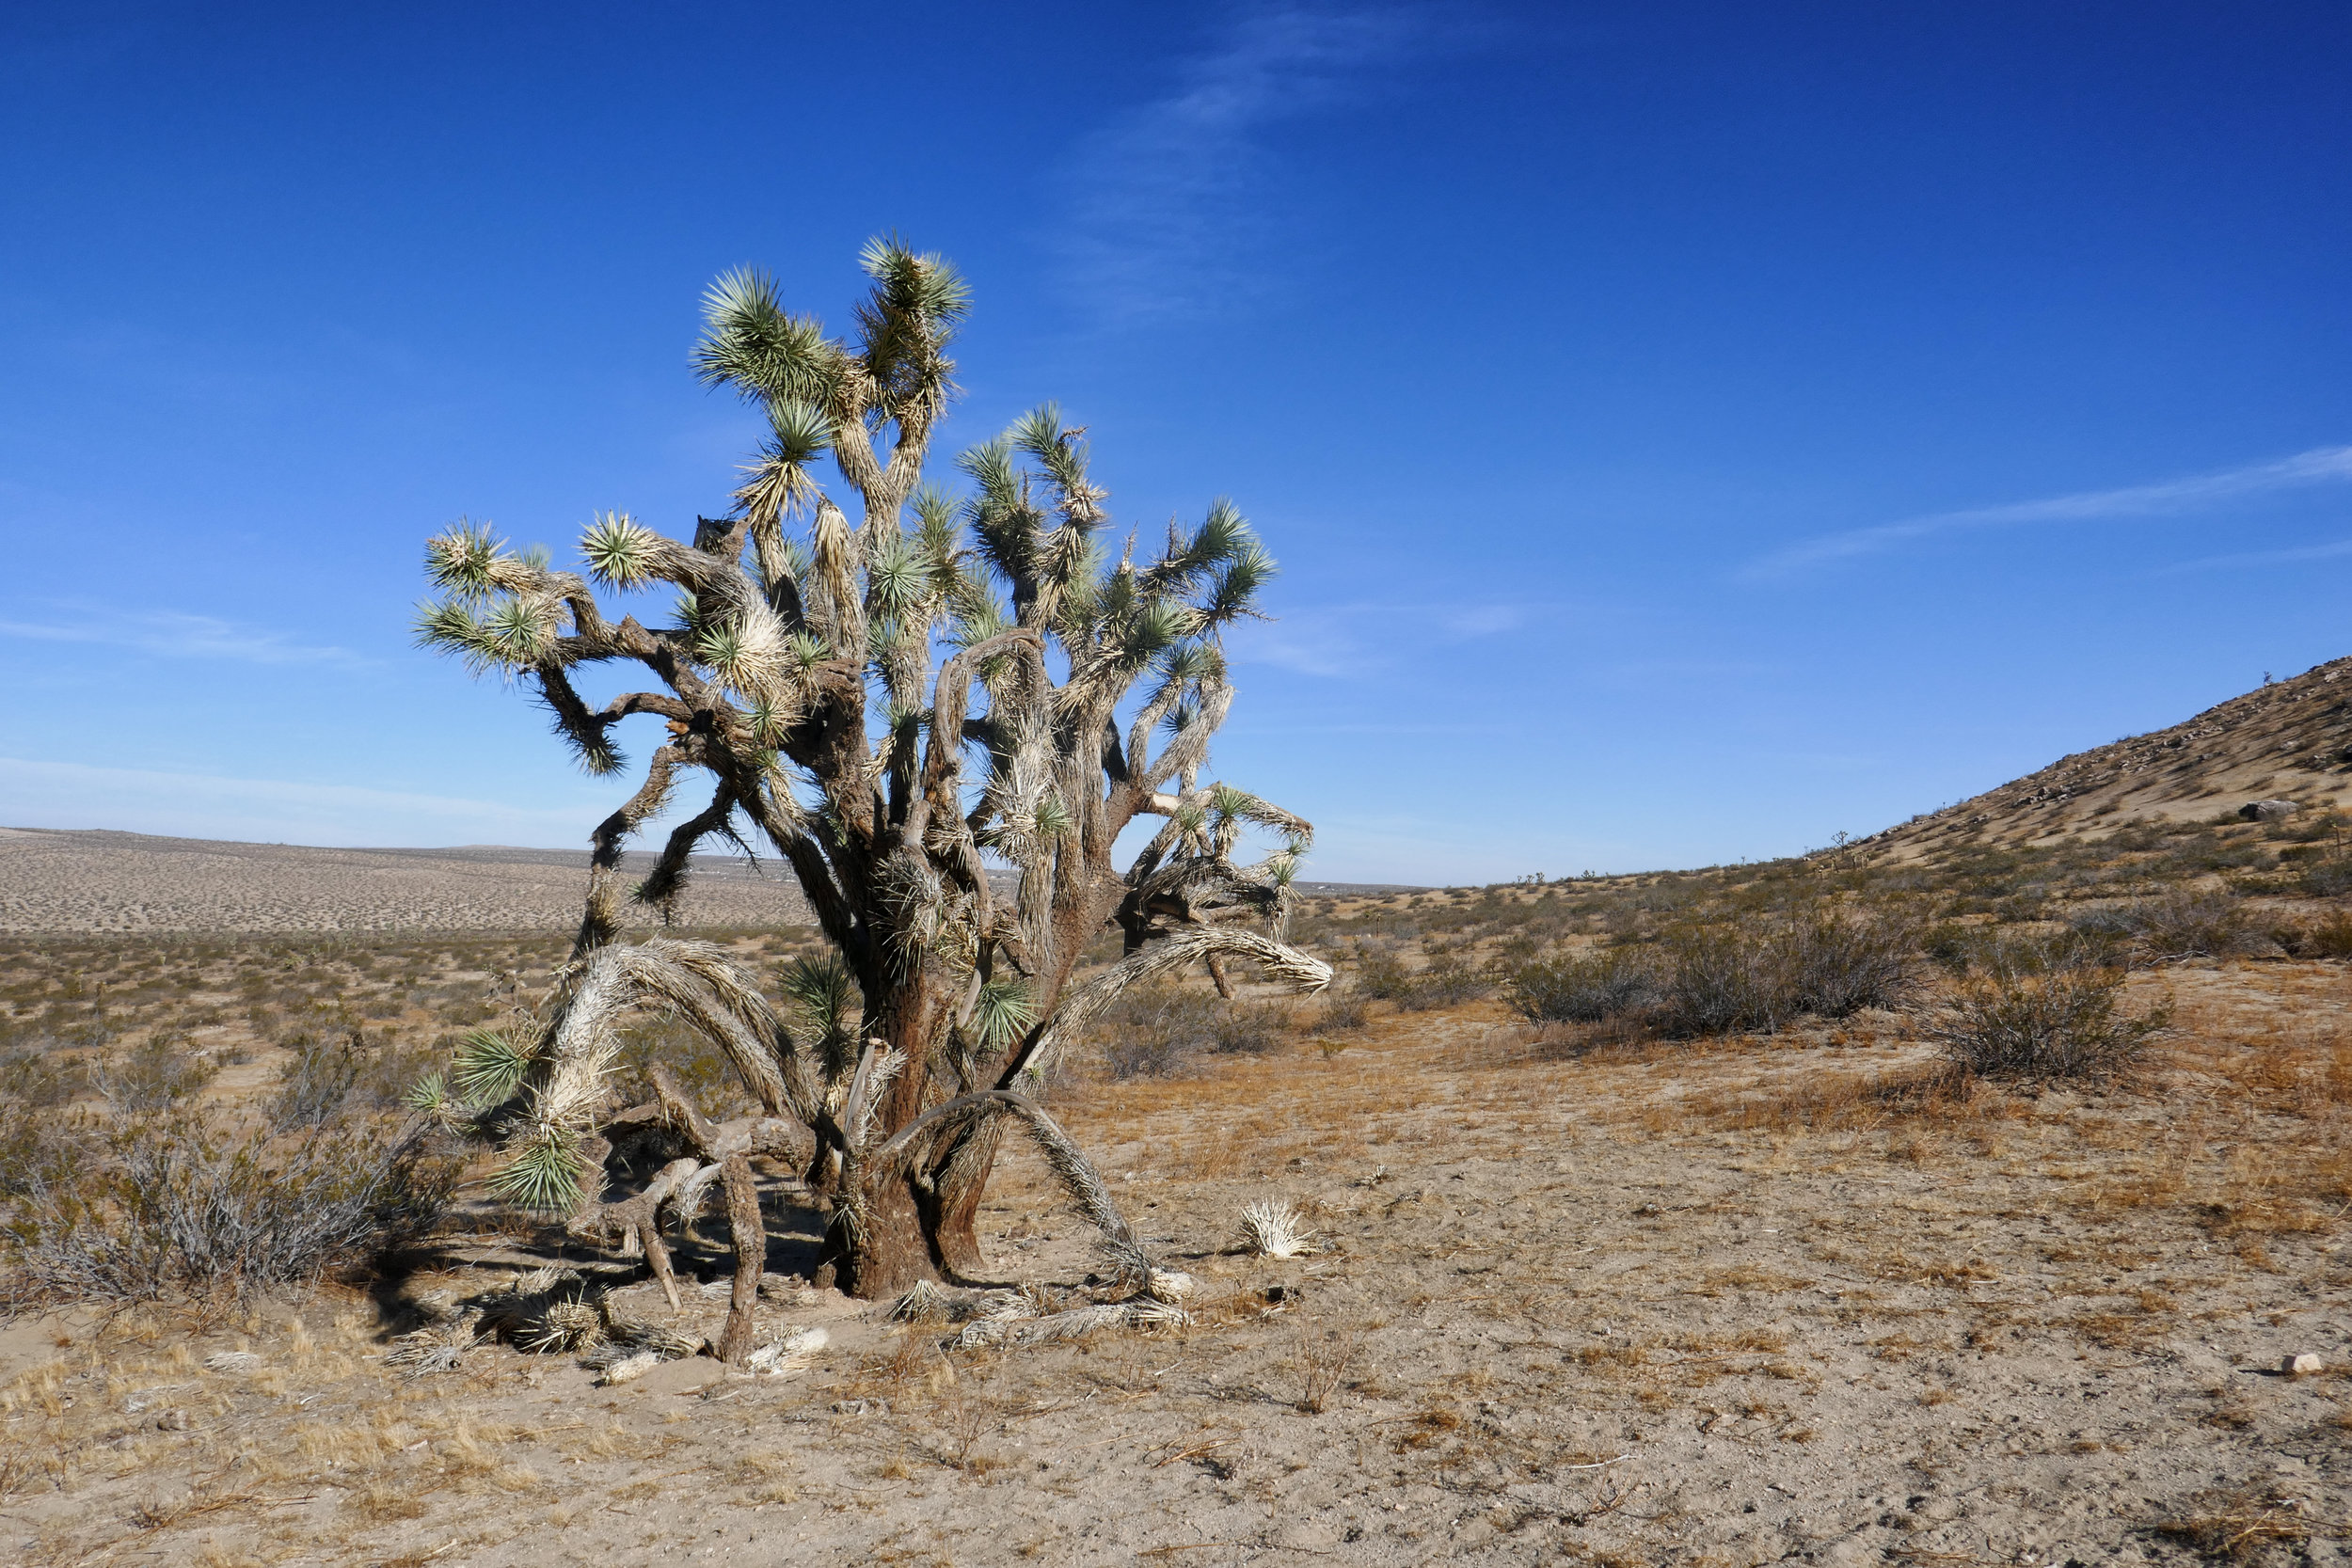 There are some really old Joshua Trees here.